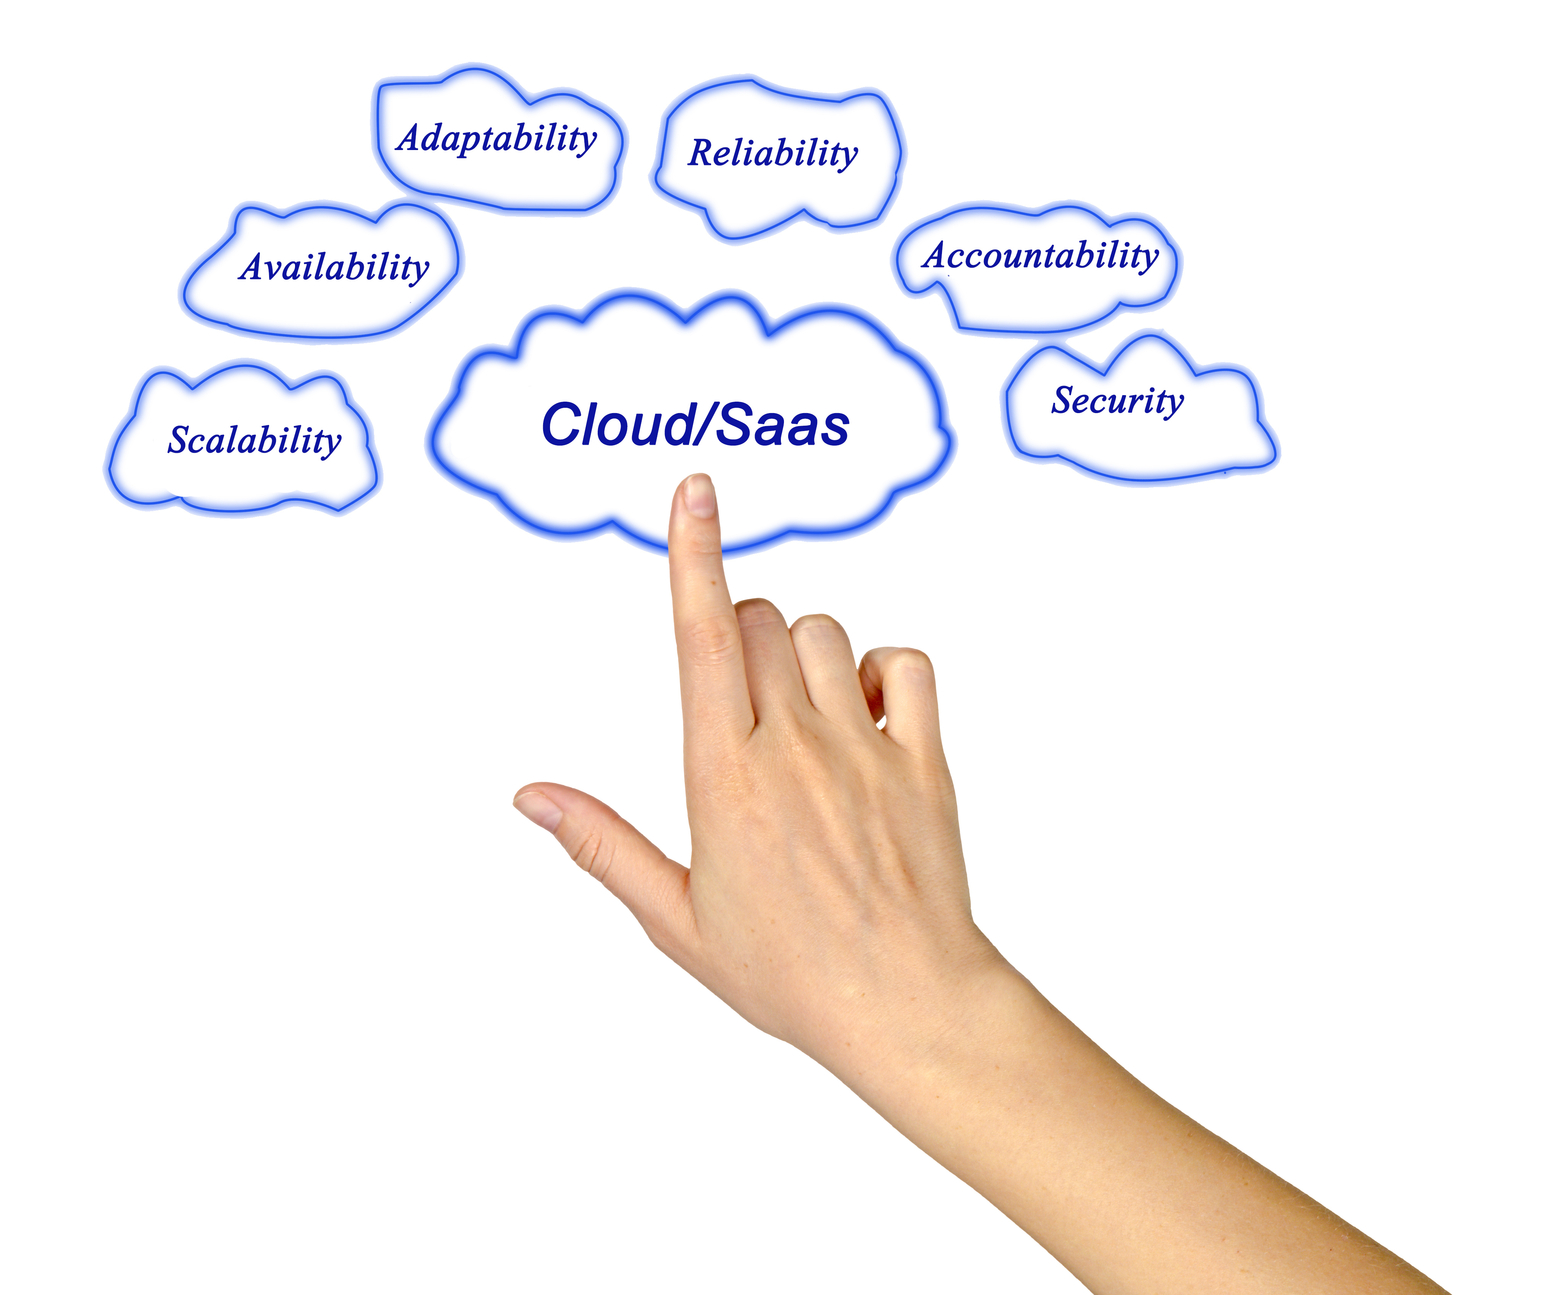 ehr and cloud computing Saas is considered a form of cloud computing two other companies that offer an saas ehr greenway medical technologies and eclinicalworks did not disclose their customers' identities to klas top 10 cloud-based ehrs - medscape - may 15, 2012 authors and disclosures authors.